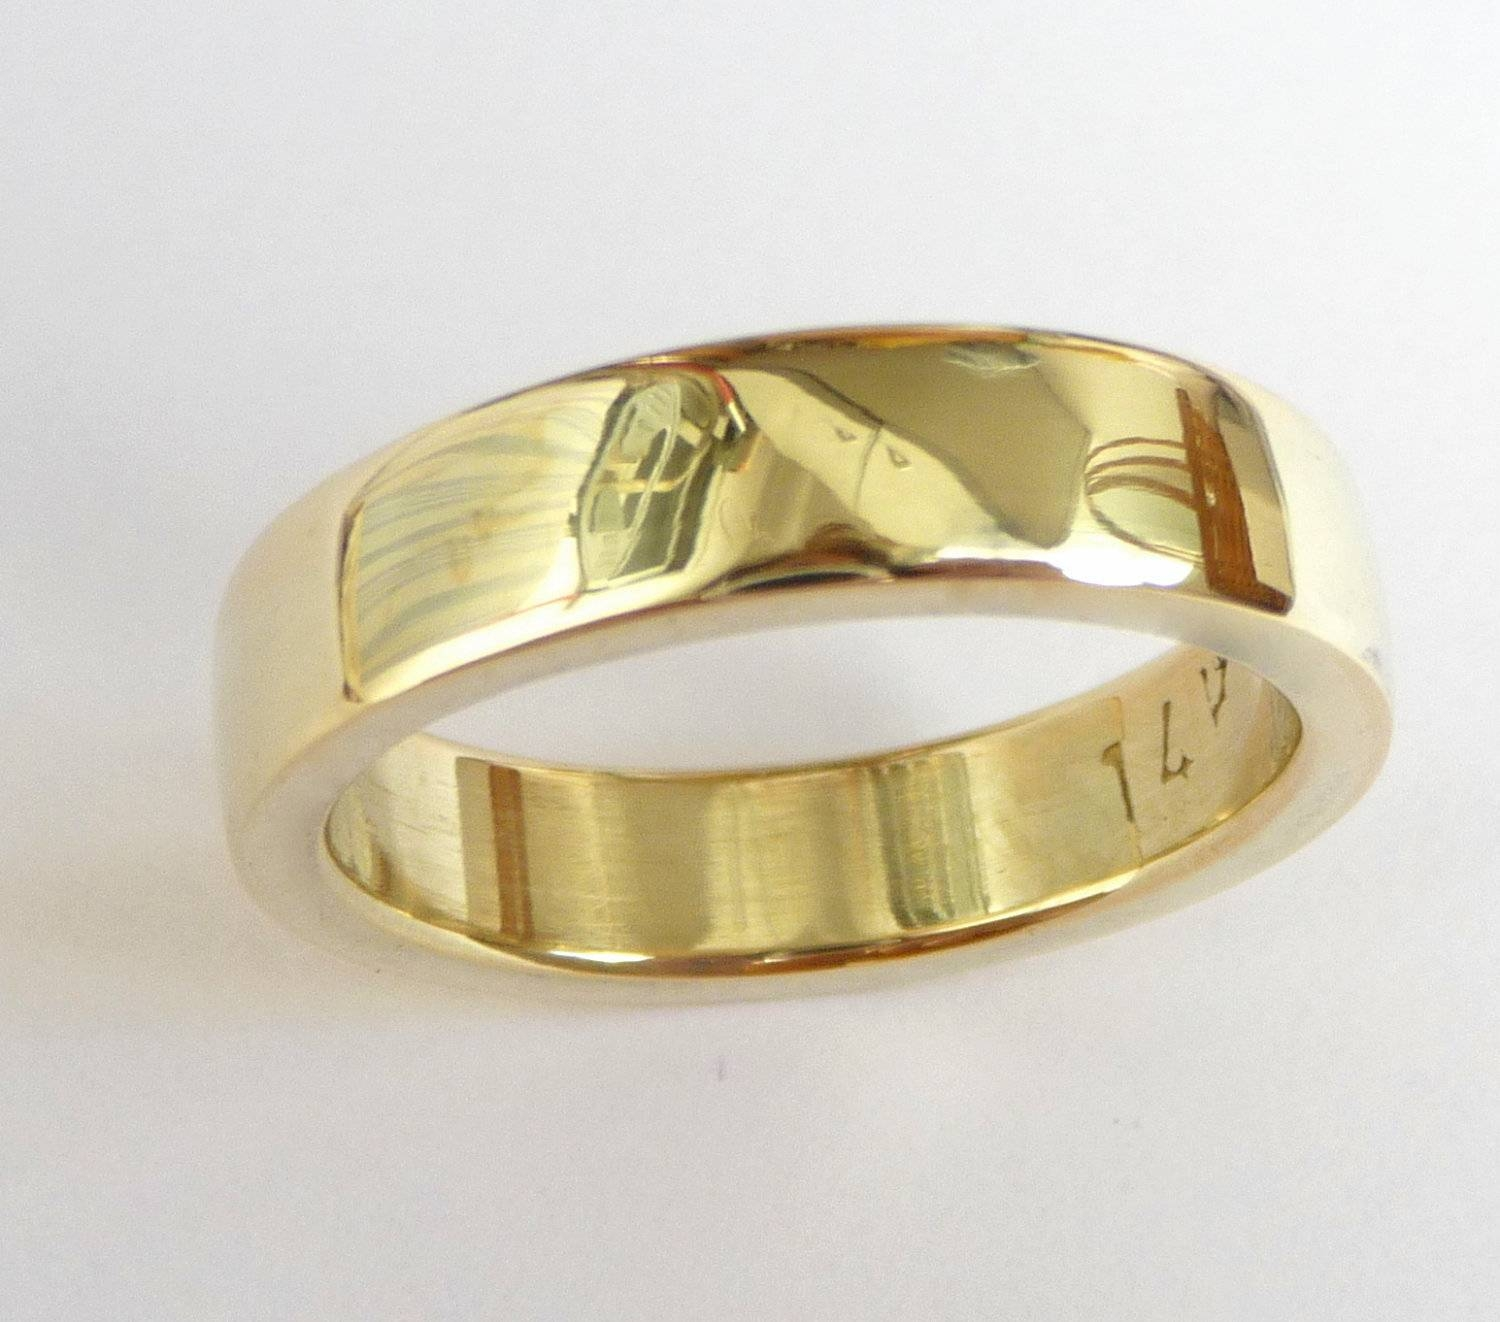 Mens Wedding Band Men's Gold Ring Men Wedding Ring Thick Throughout Male Gold Wedding Bands (View 7 of 15)